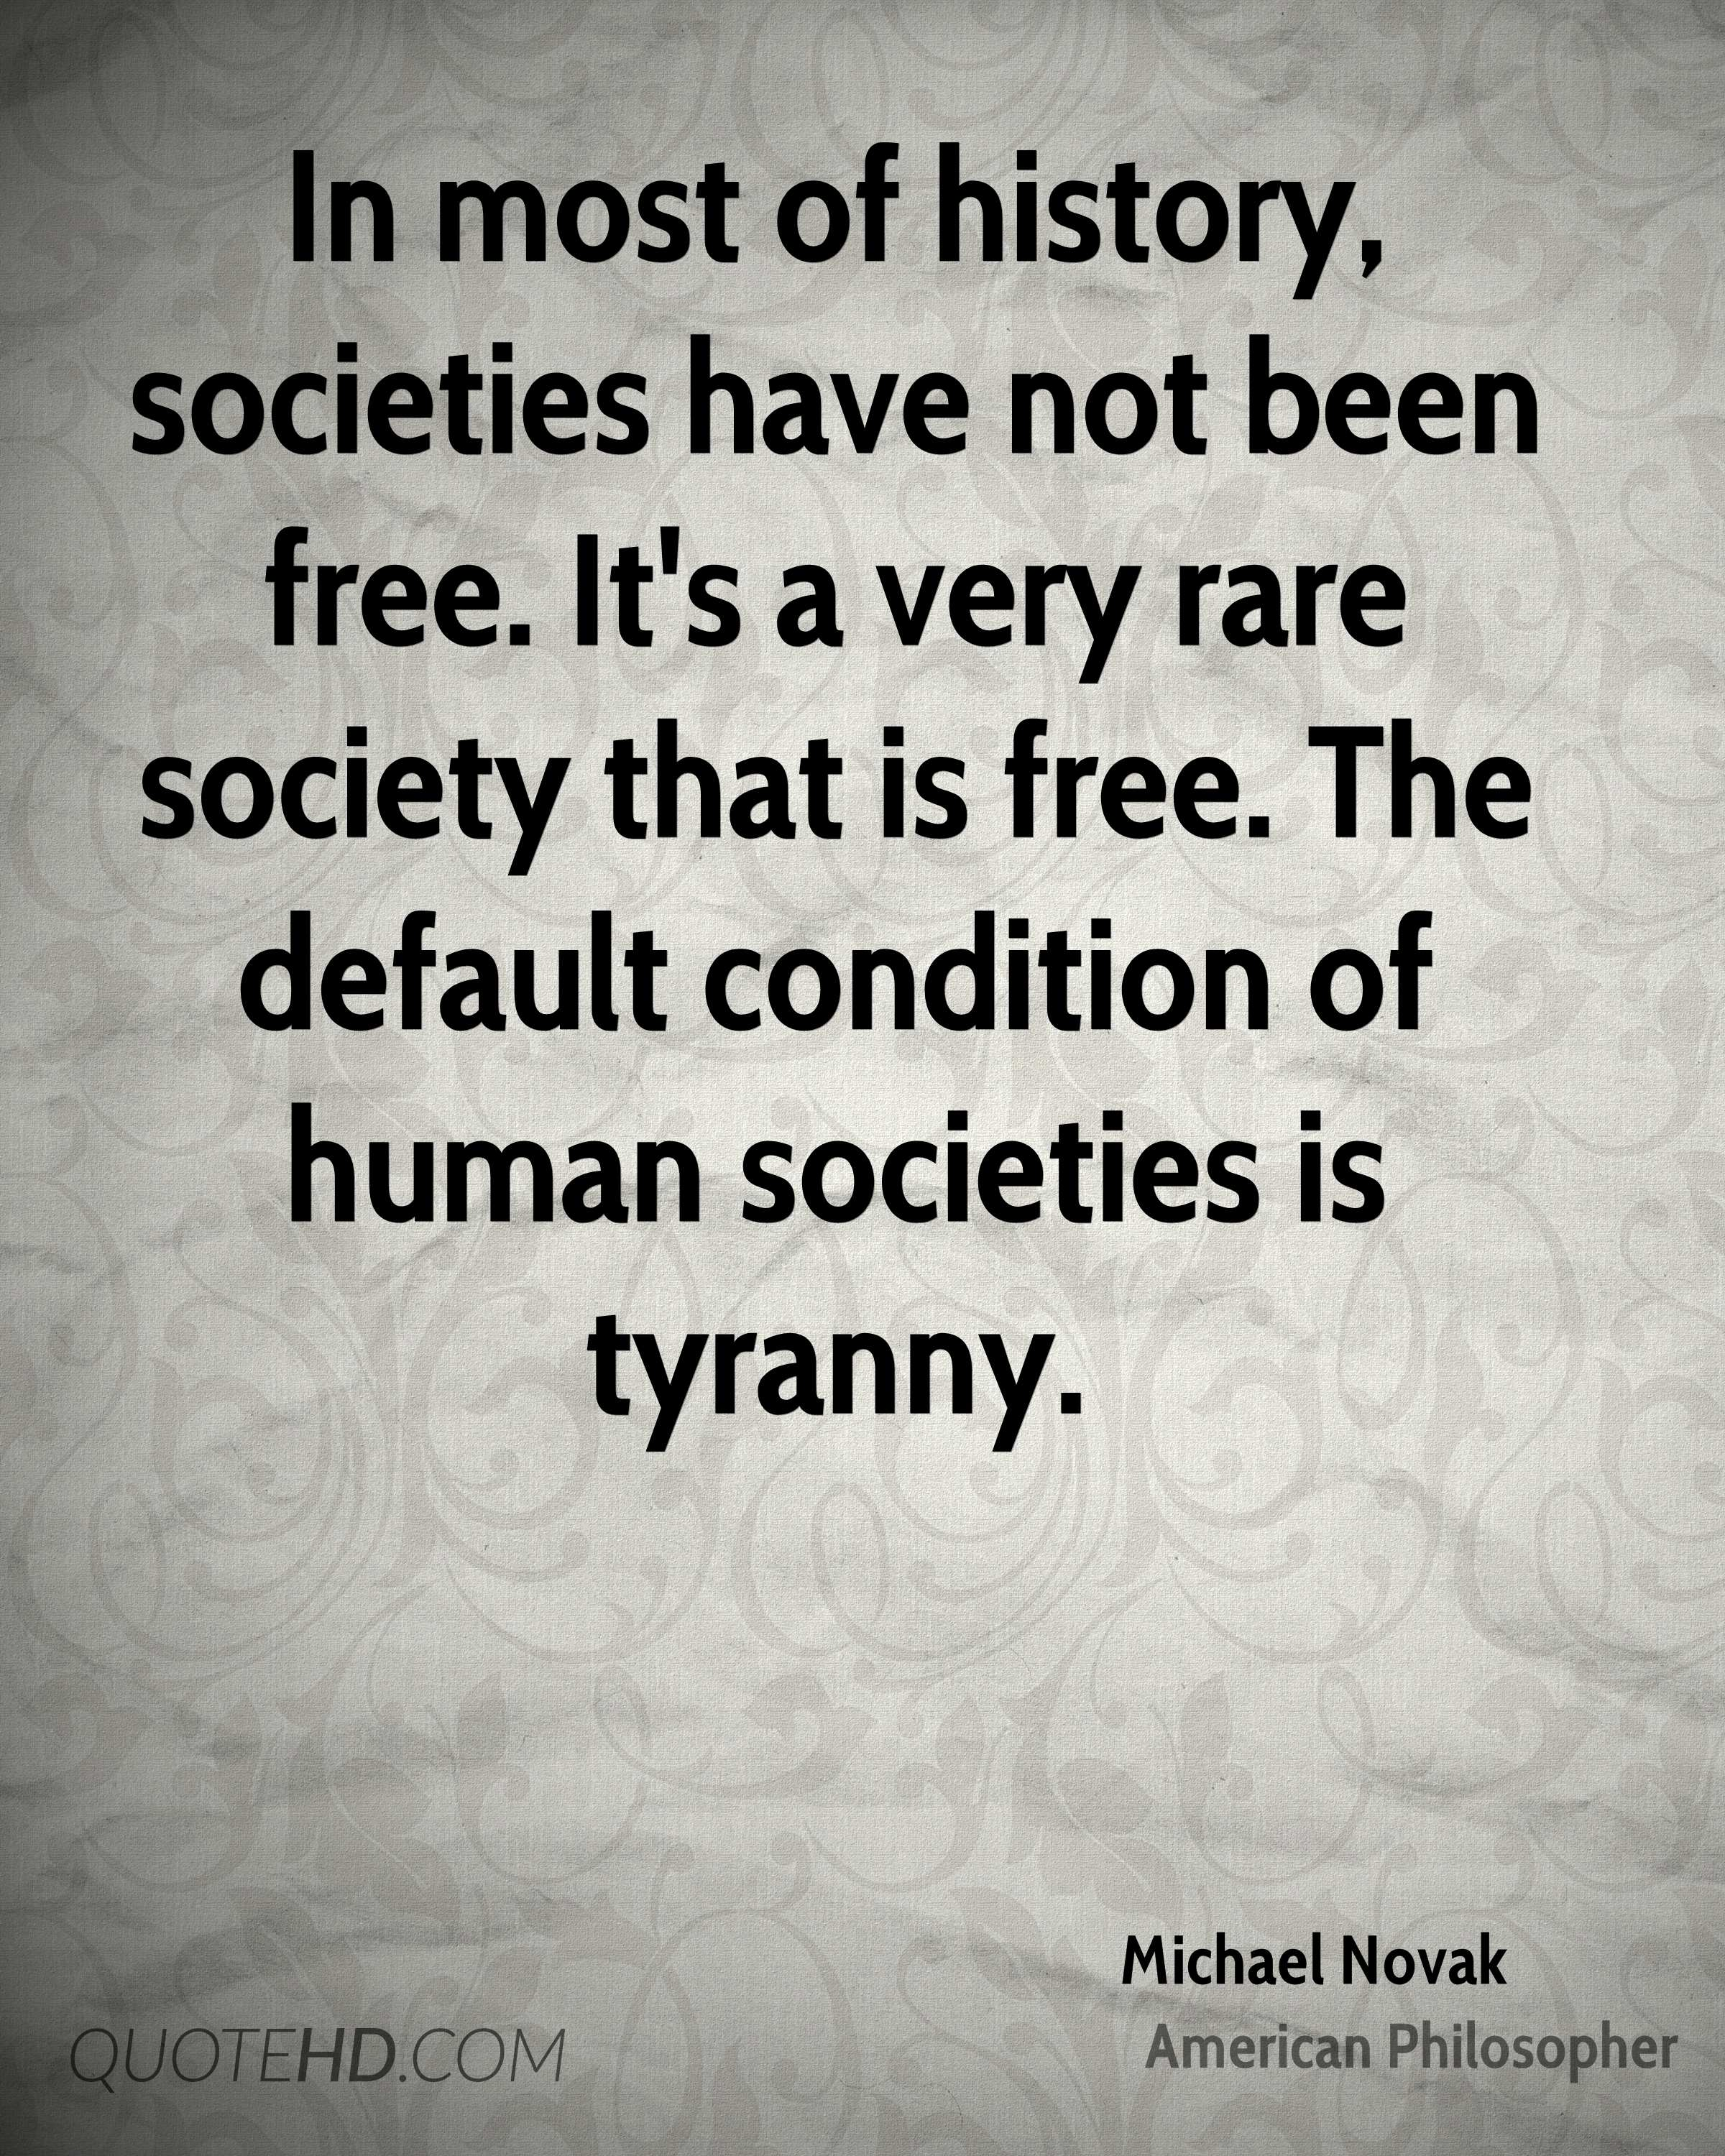 In most of history, societies have not been free. It's a very rare society that is free. The default condition of human societies is tyranny.